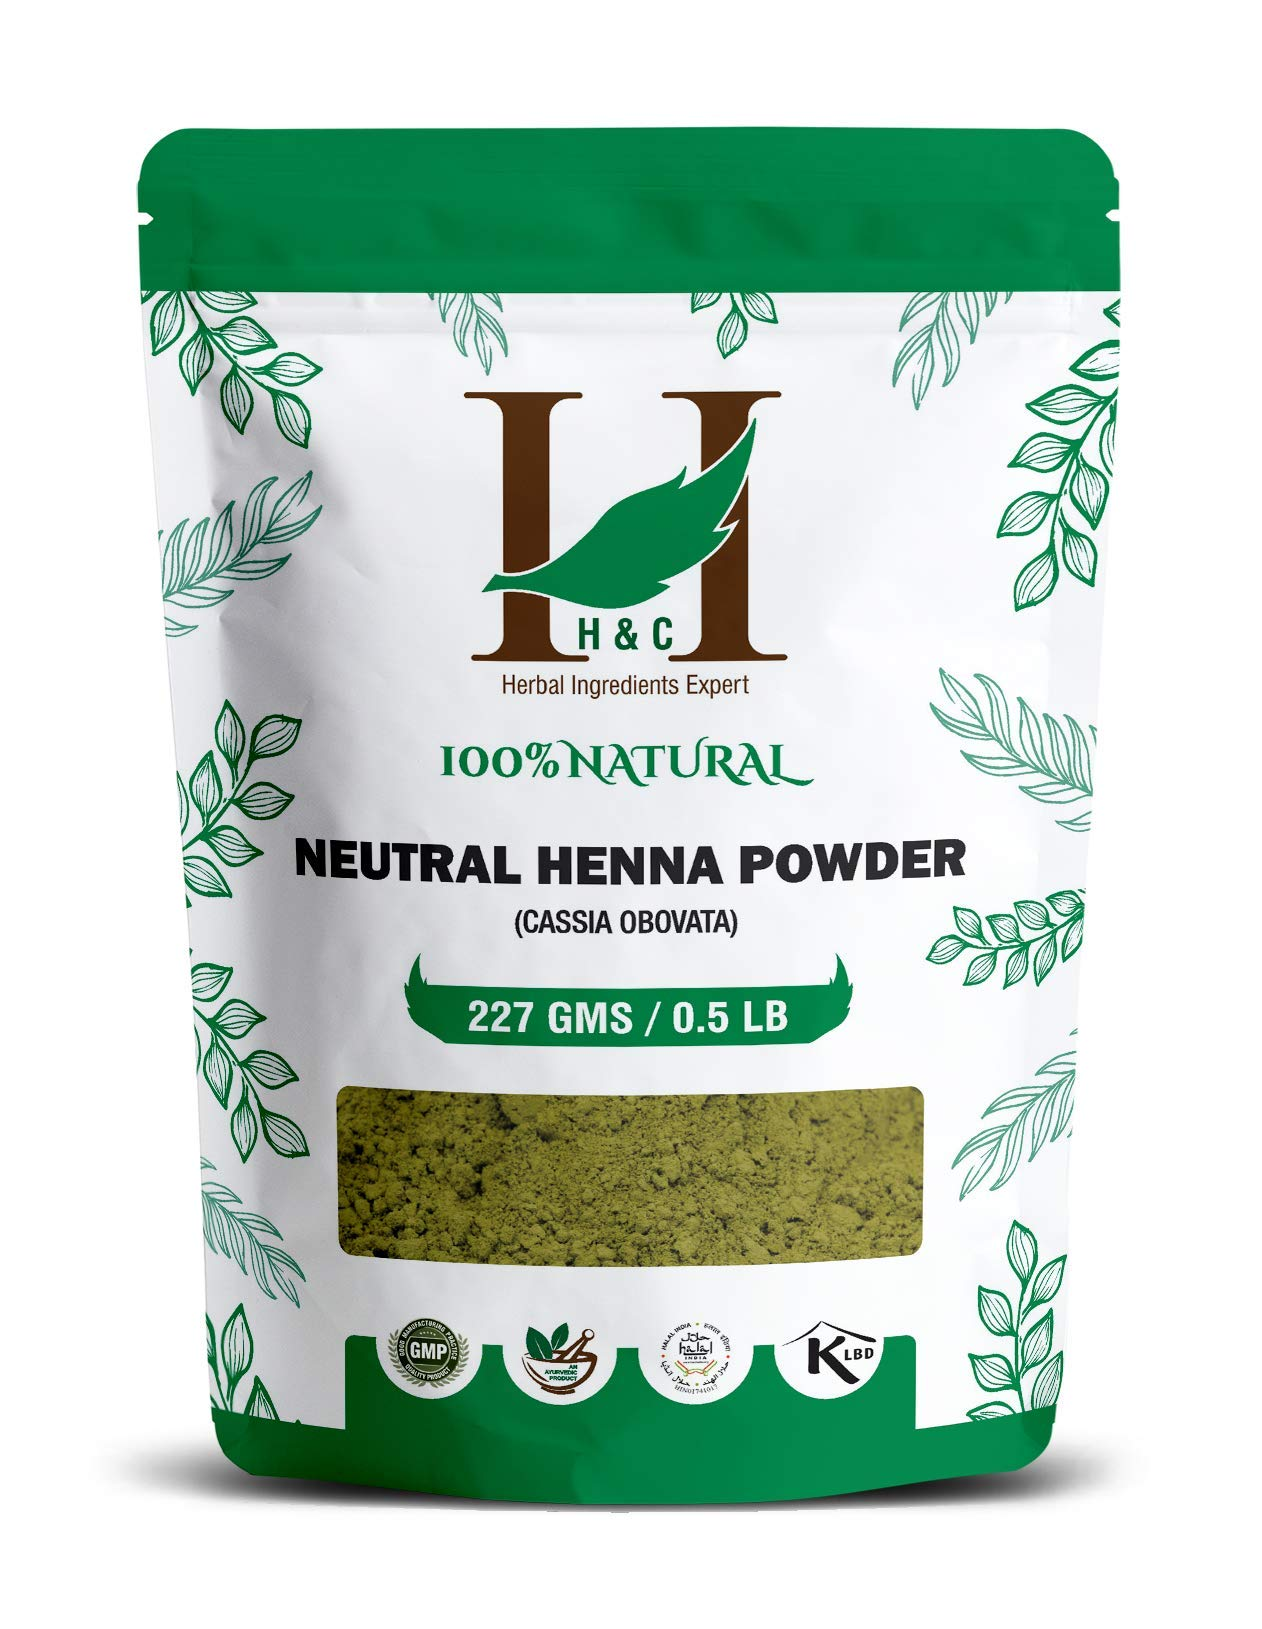 H&C 100% Pure Natural Organically Grown Neutral Henna Powder / Colorless Henna / Senna Powder / Cassia Obovata (227g / (1/2 lb) / 8 ounces) For conditioning your hair without coloring. by H&C